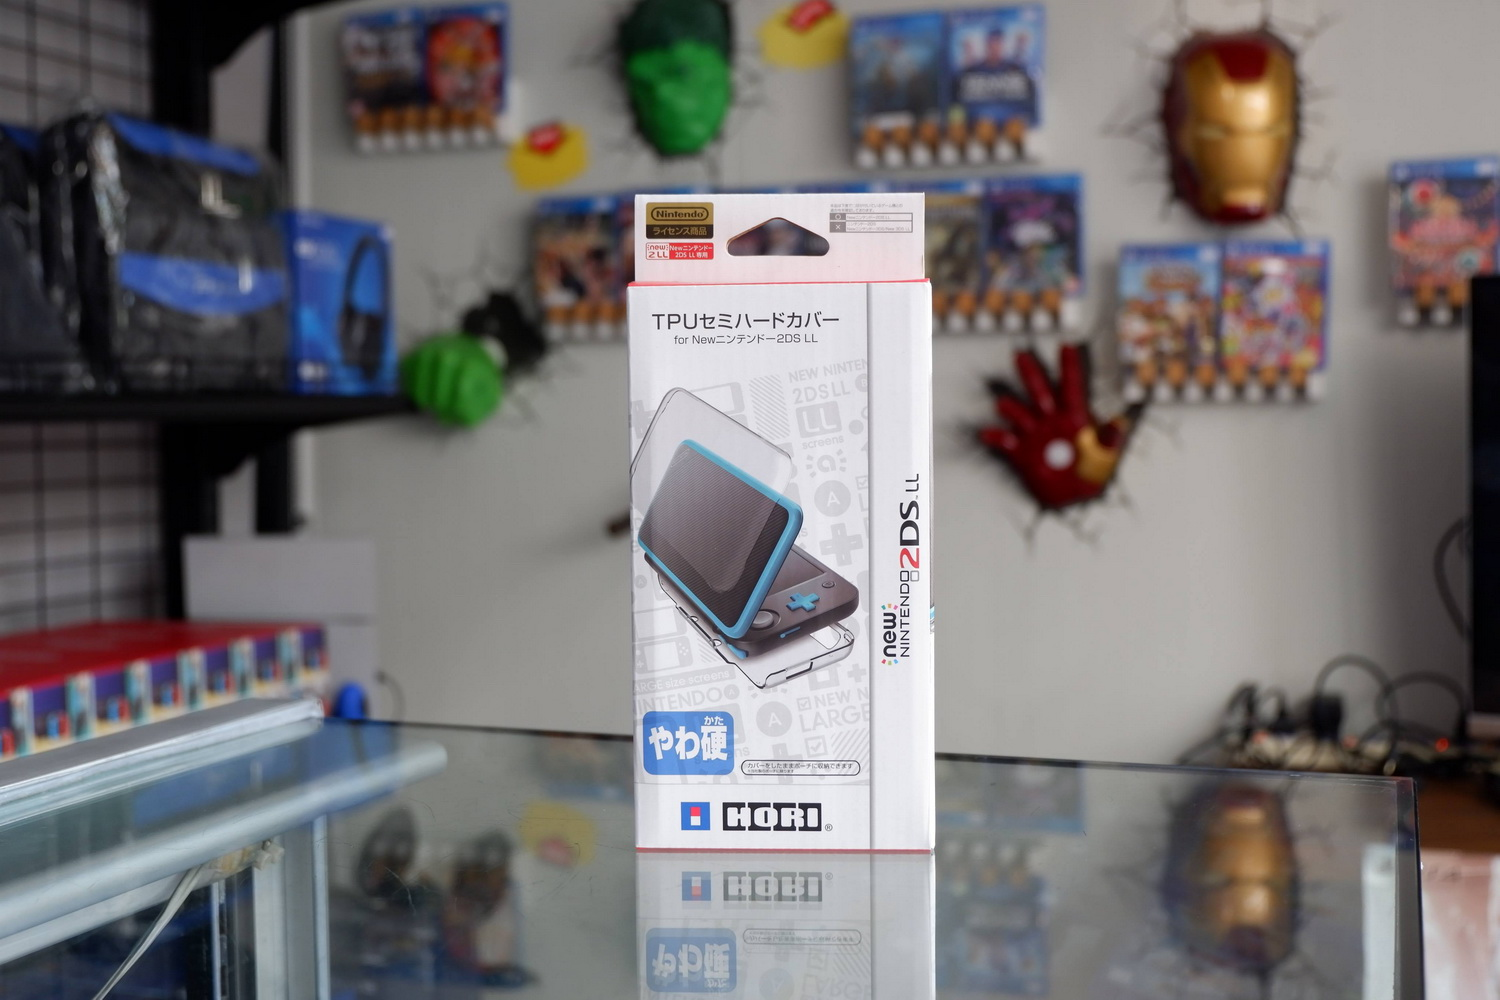 TPU for New 2dsxl